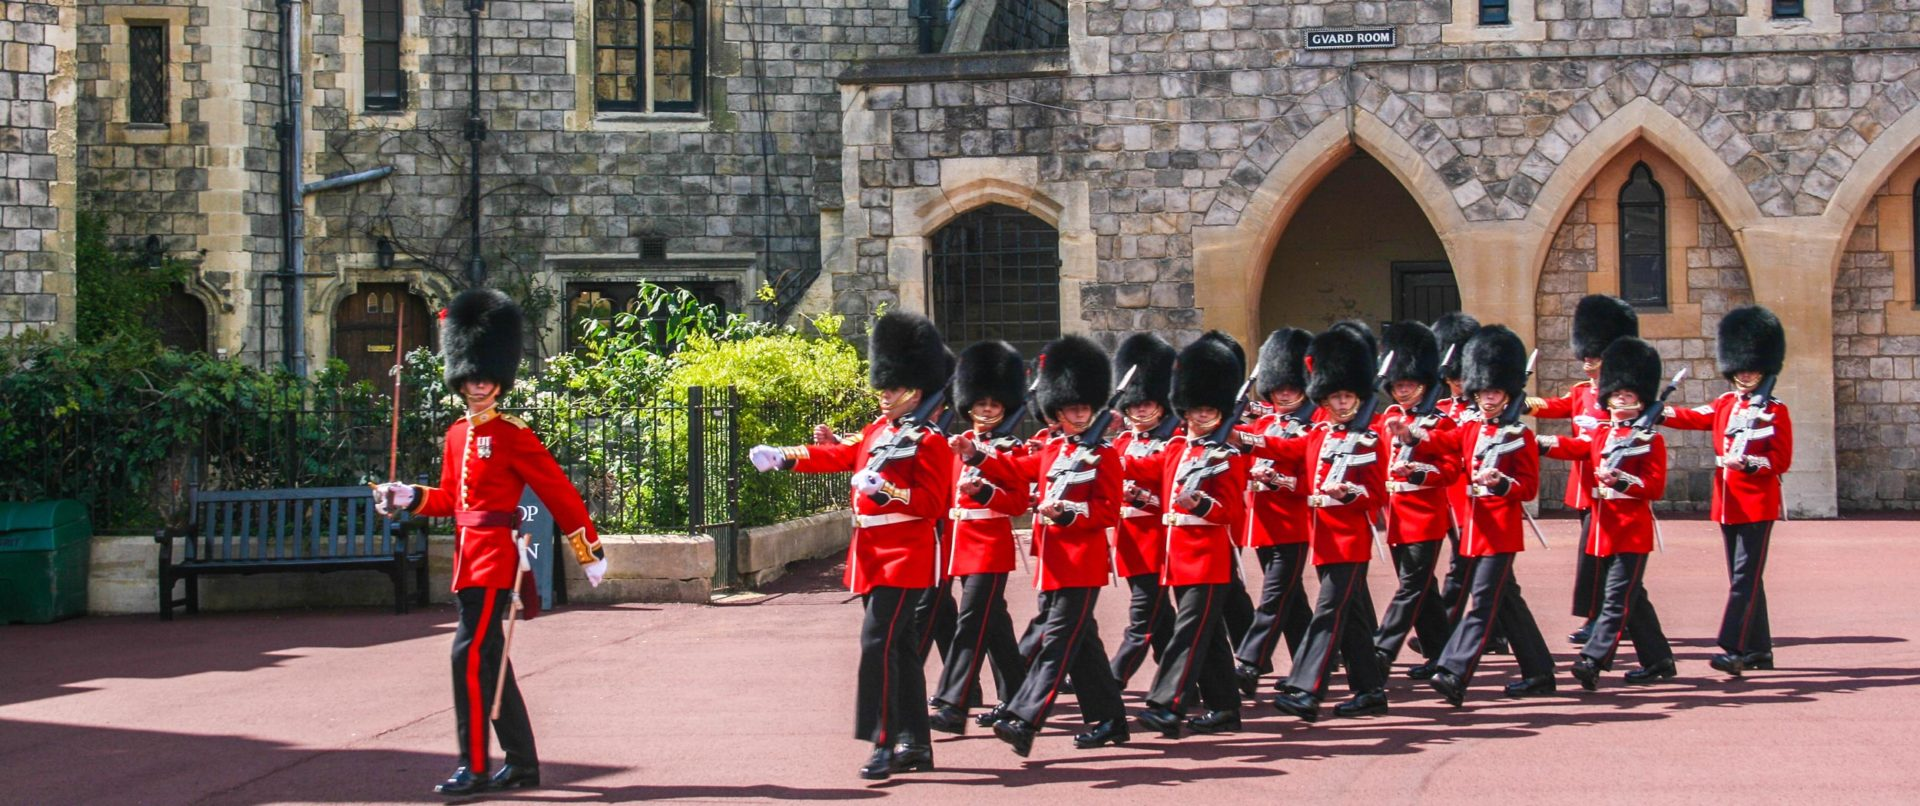 Windsor-Castle-Family-Tour-guards-